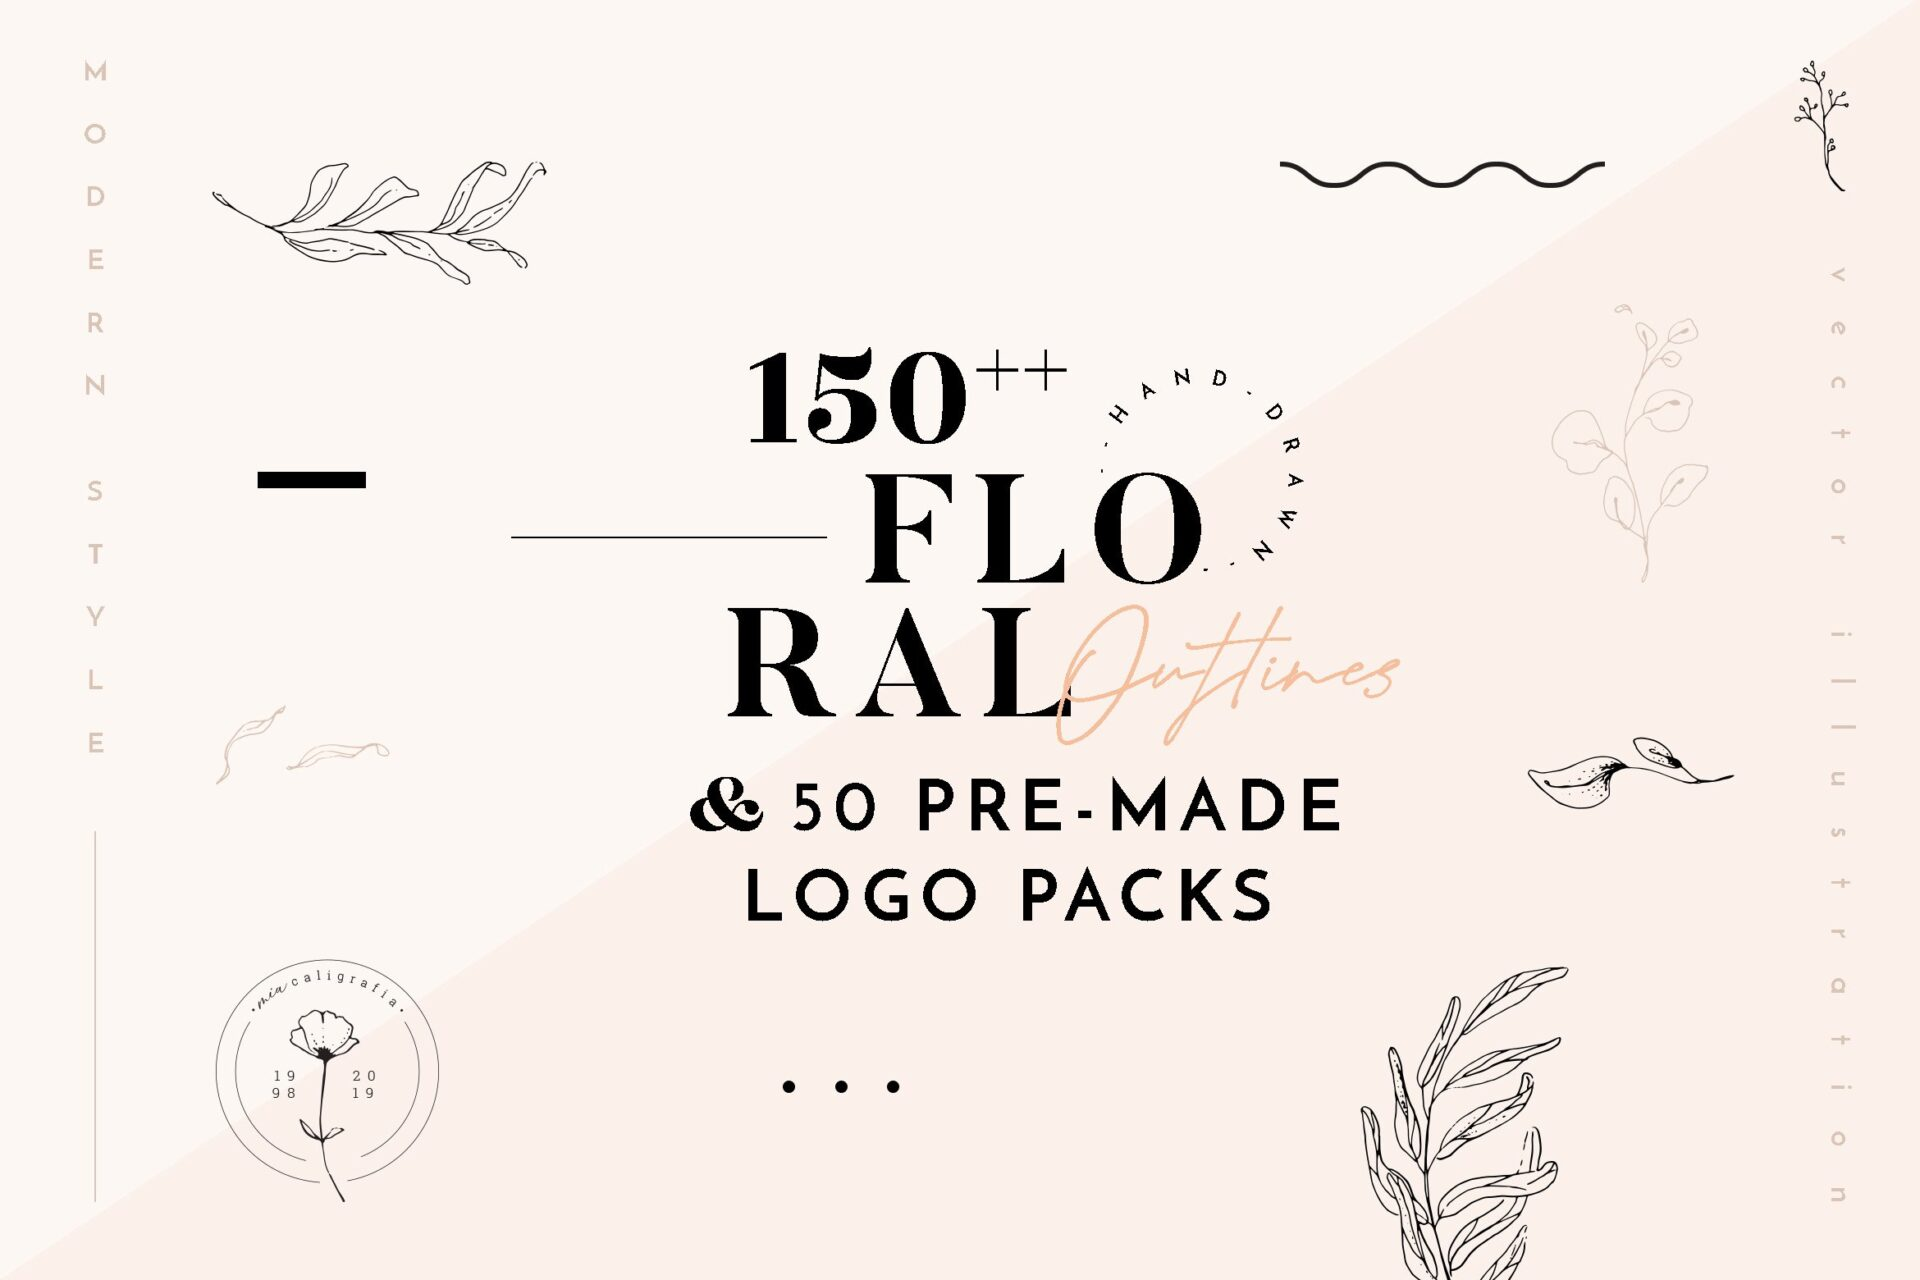 16 Botanical Logo Design Kits For Your Business - 07 Floral 150 Outlines and 50 Premade Pack